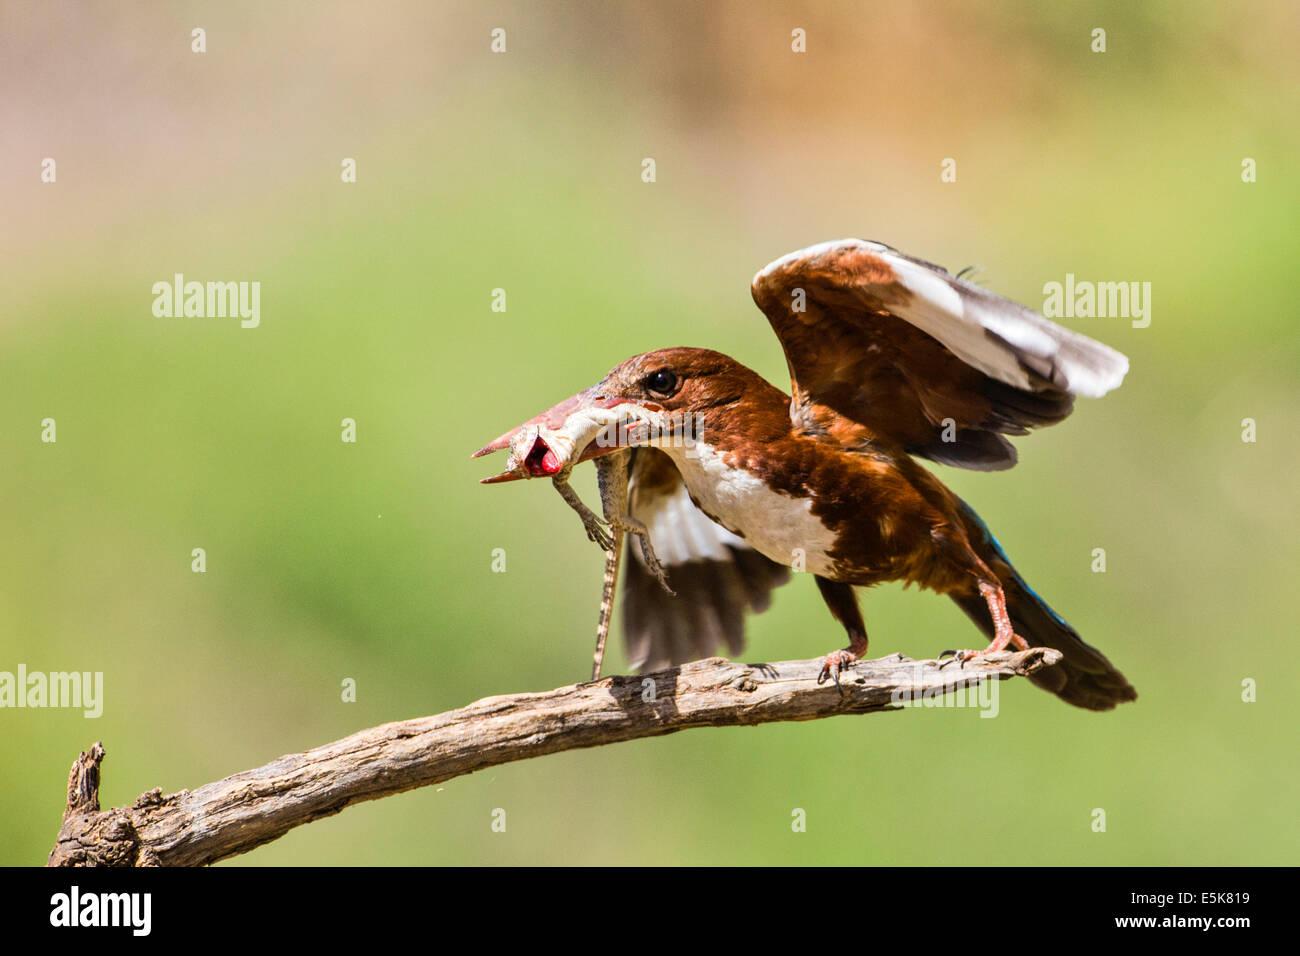 White-throated Kingfisher (Halcyon smyrnensis) with a lizard in its beak, Photographed in Israel - Stock Image